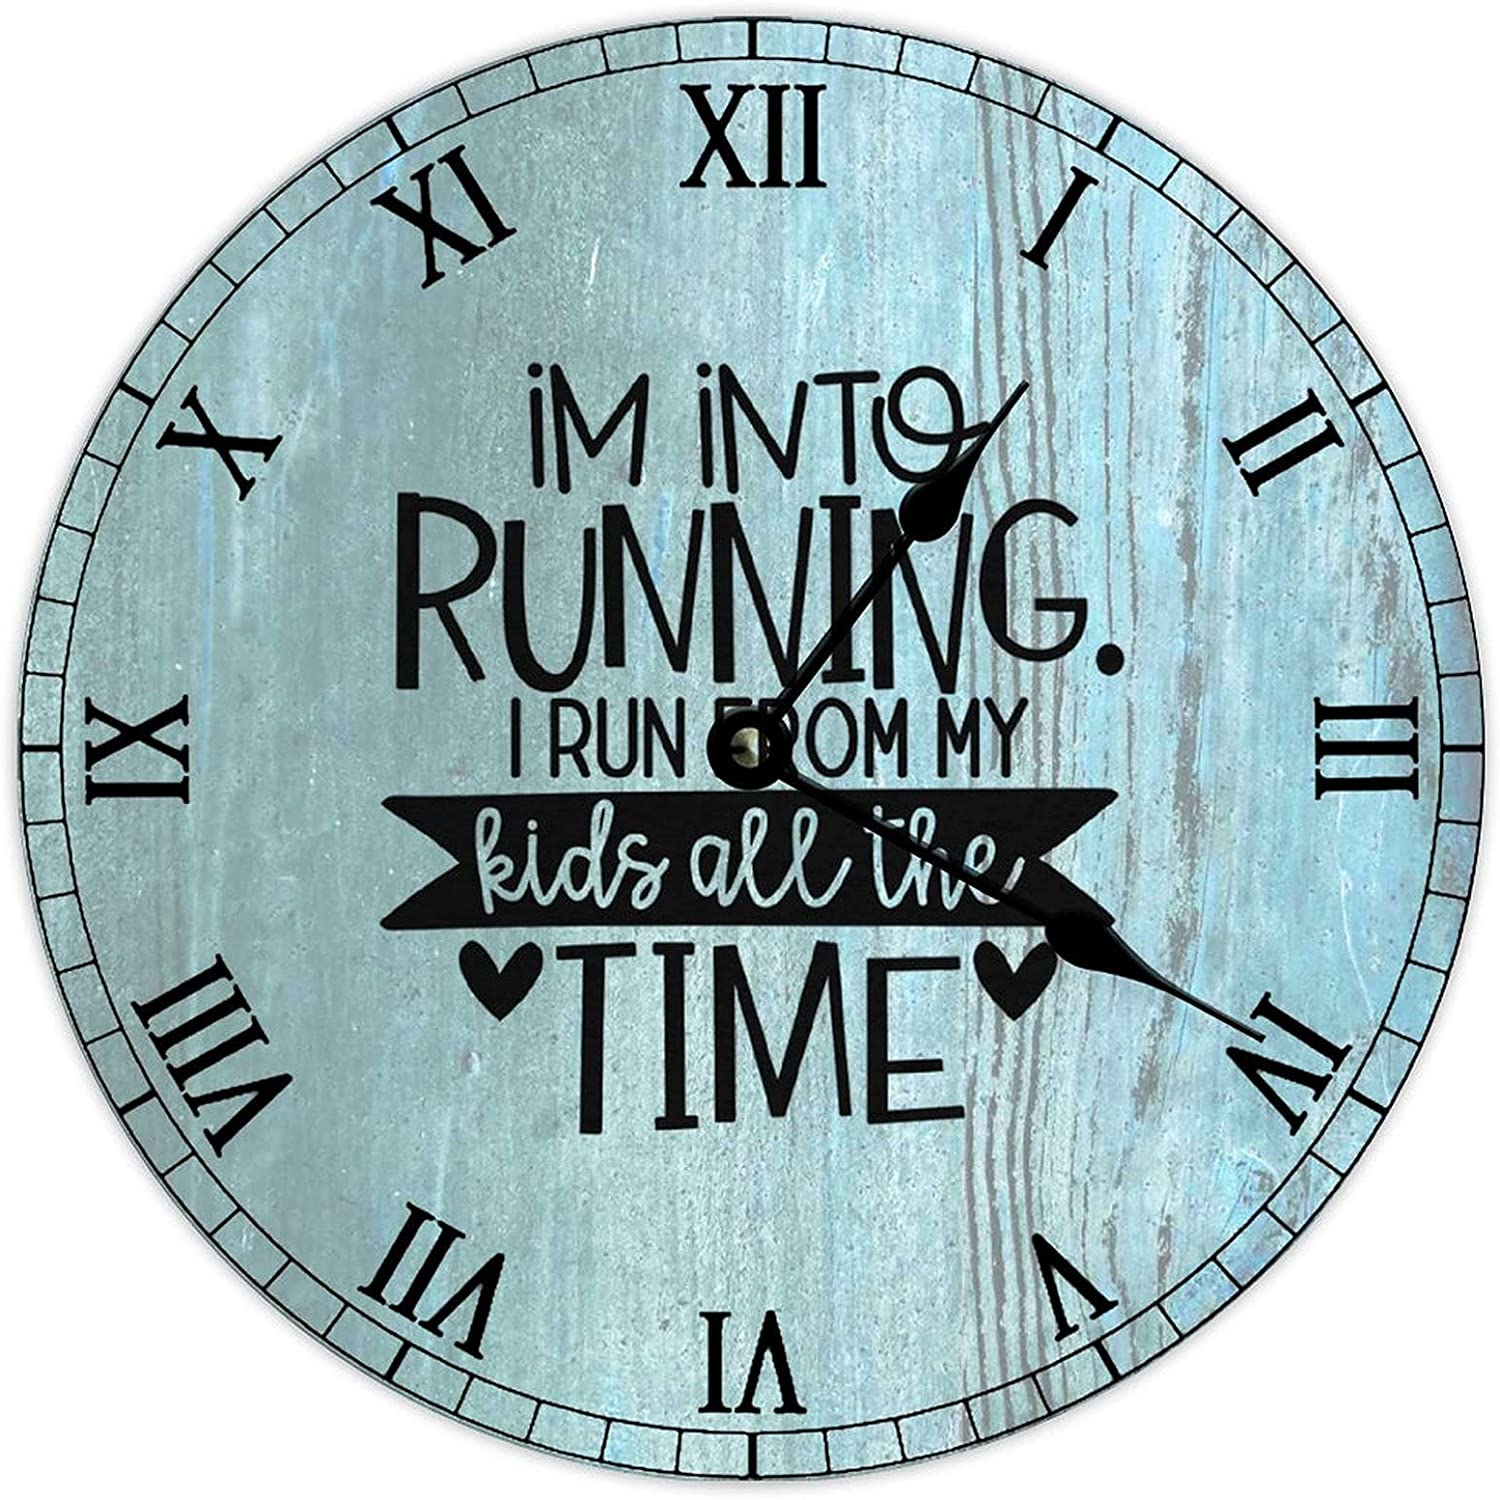 by National uniform free shipping Unbranded Wooden Max 89% OFF Clock Wall Art 15 I Into Running R Inch I'm